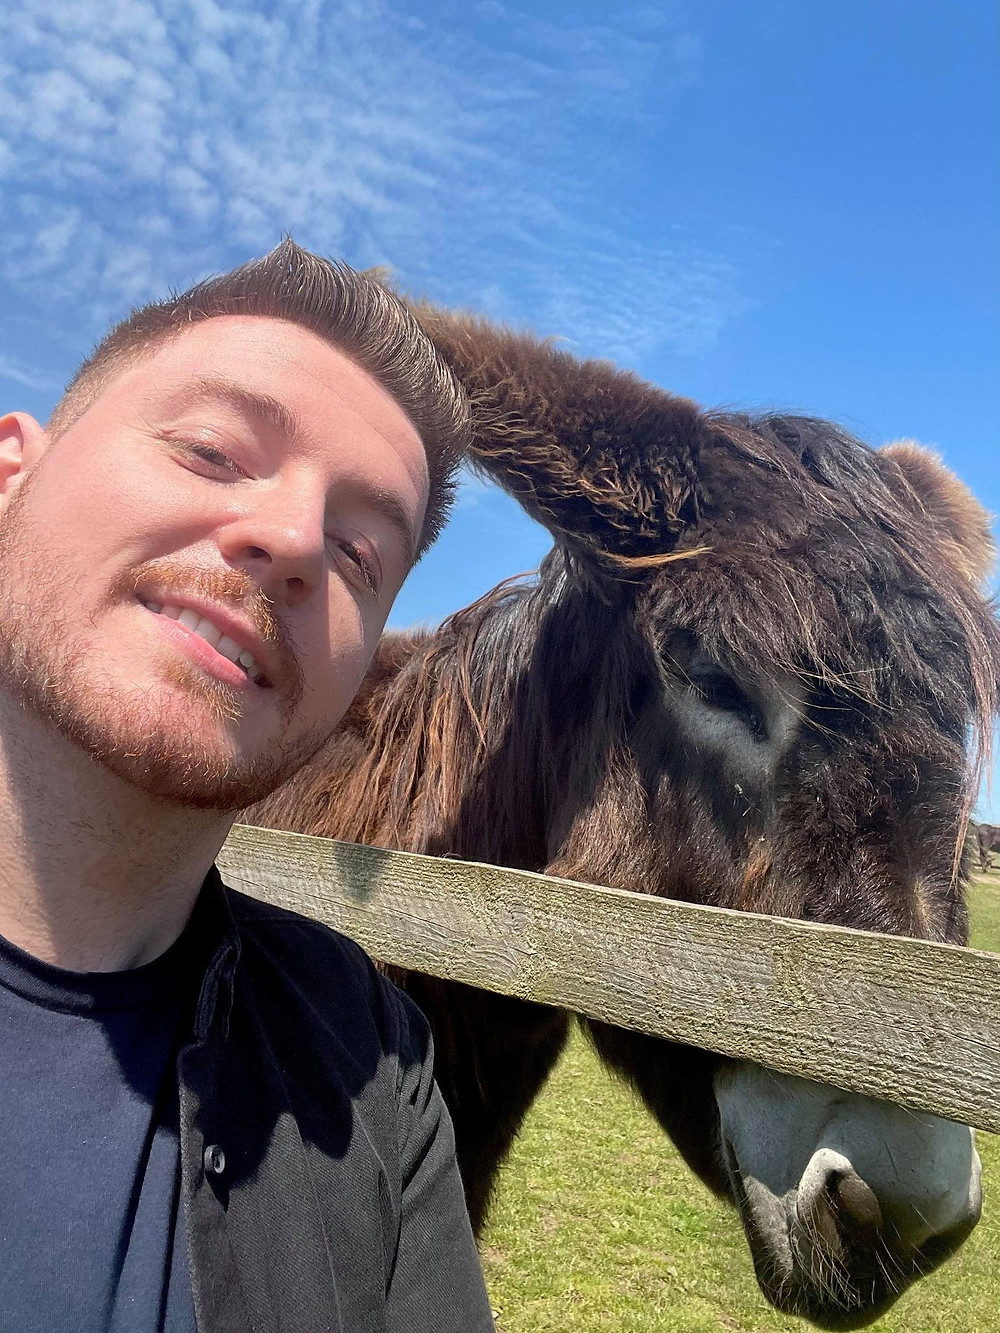 Selfie of Ross leaning his face towards a brown donkey in the field - blue skies above